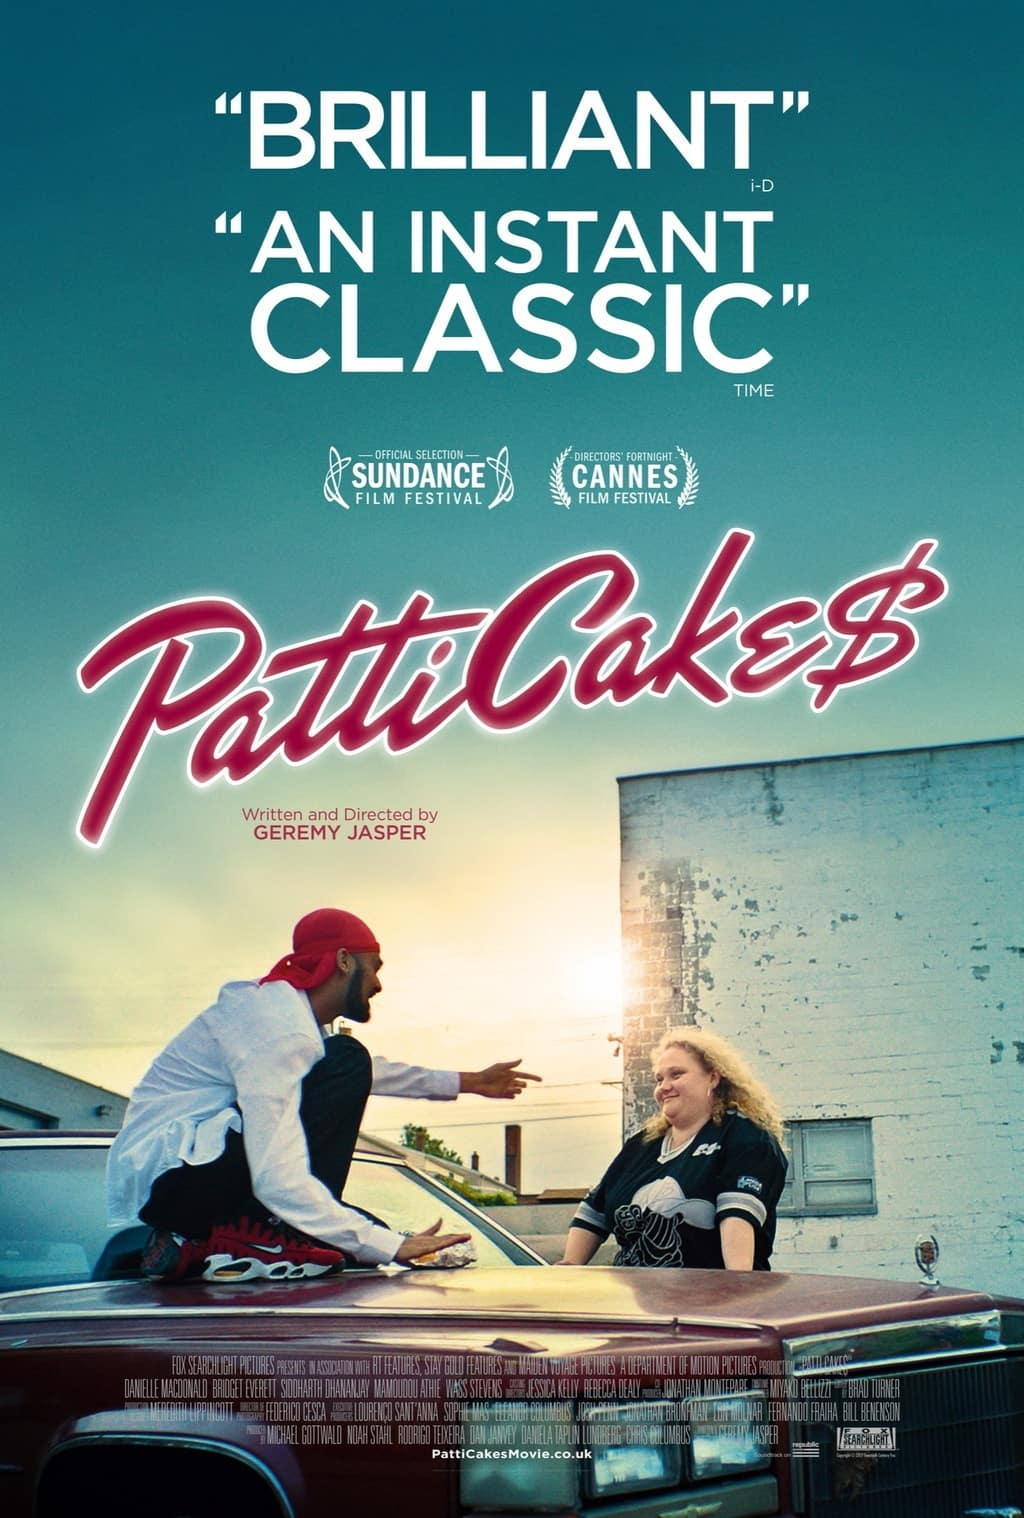 The new poster for PATTI CAKE$